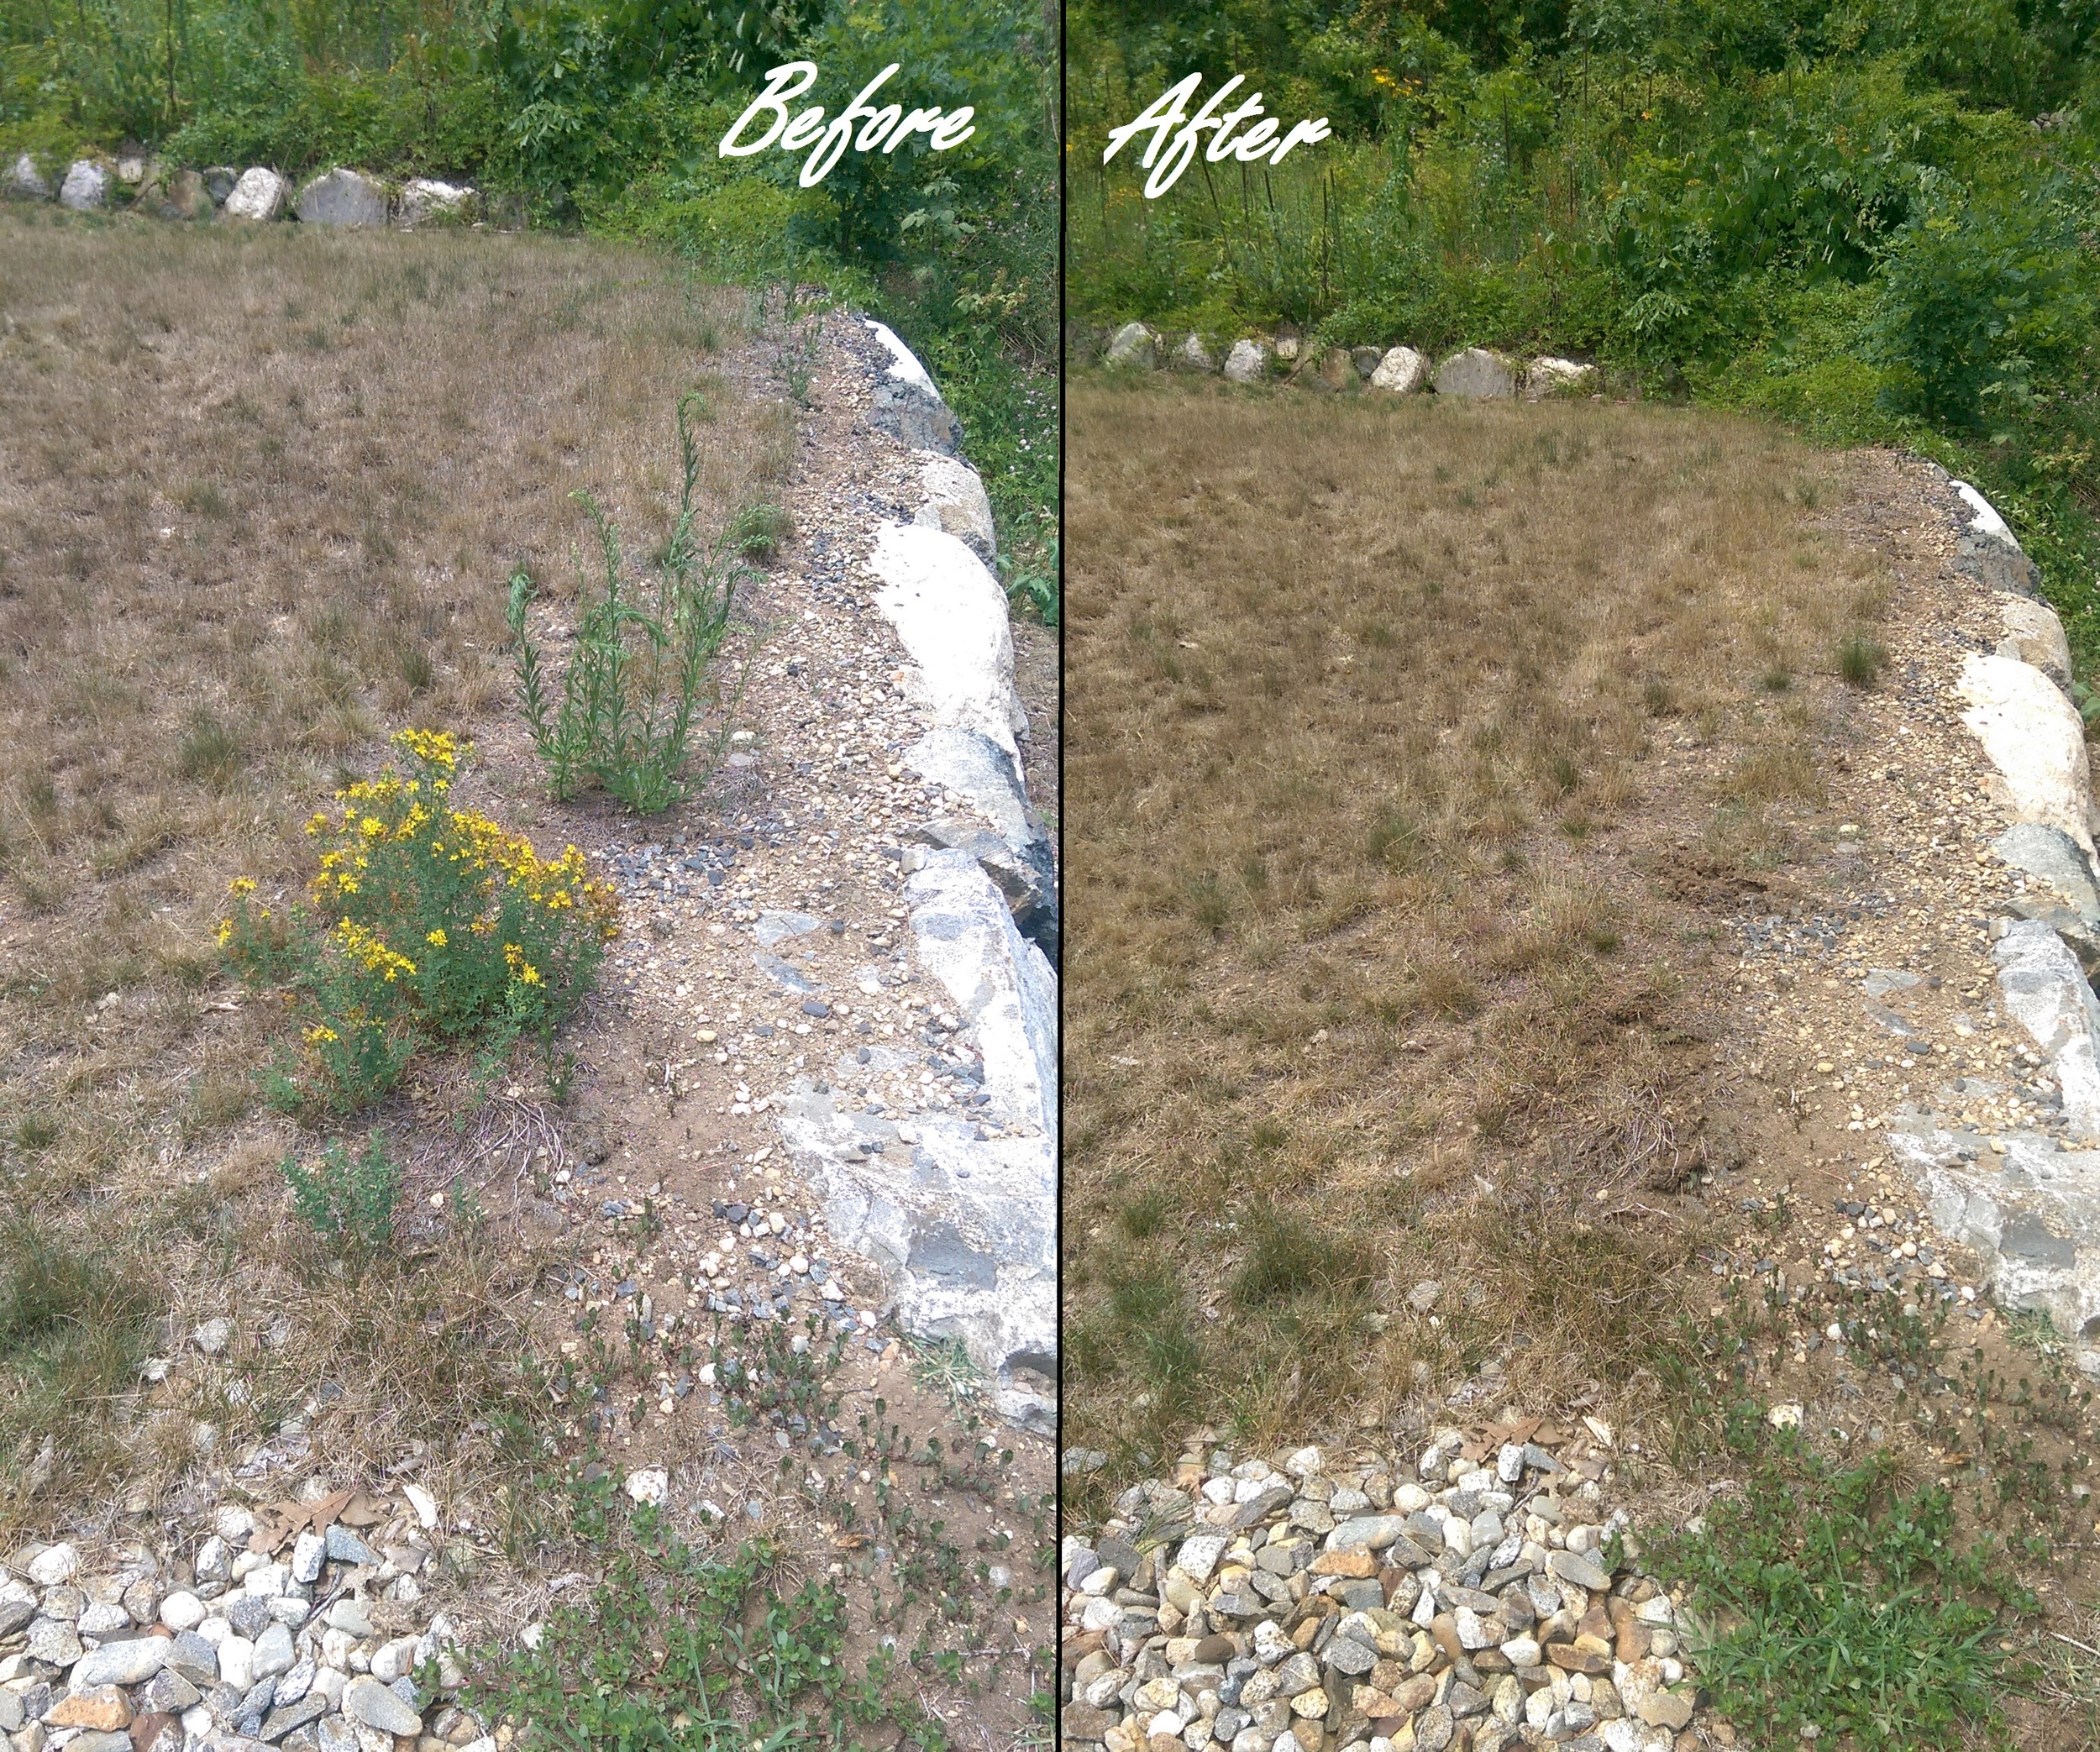 Lawn before and after